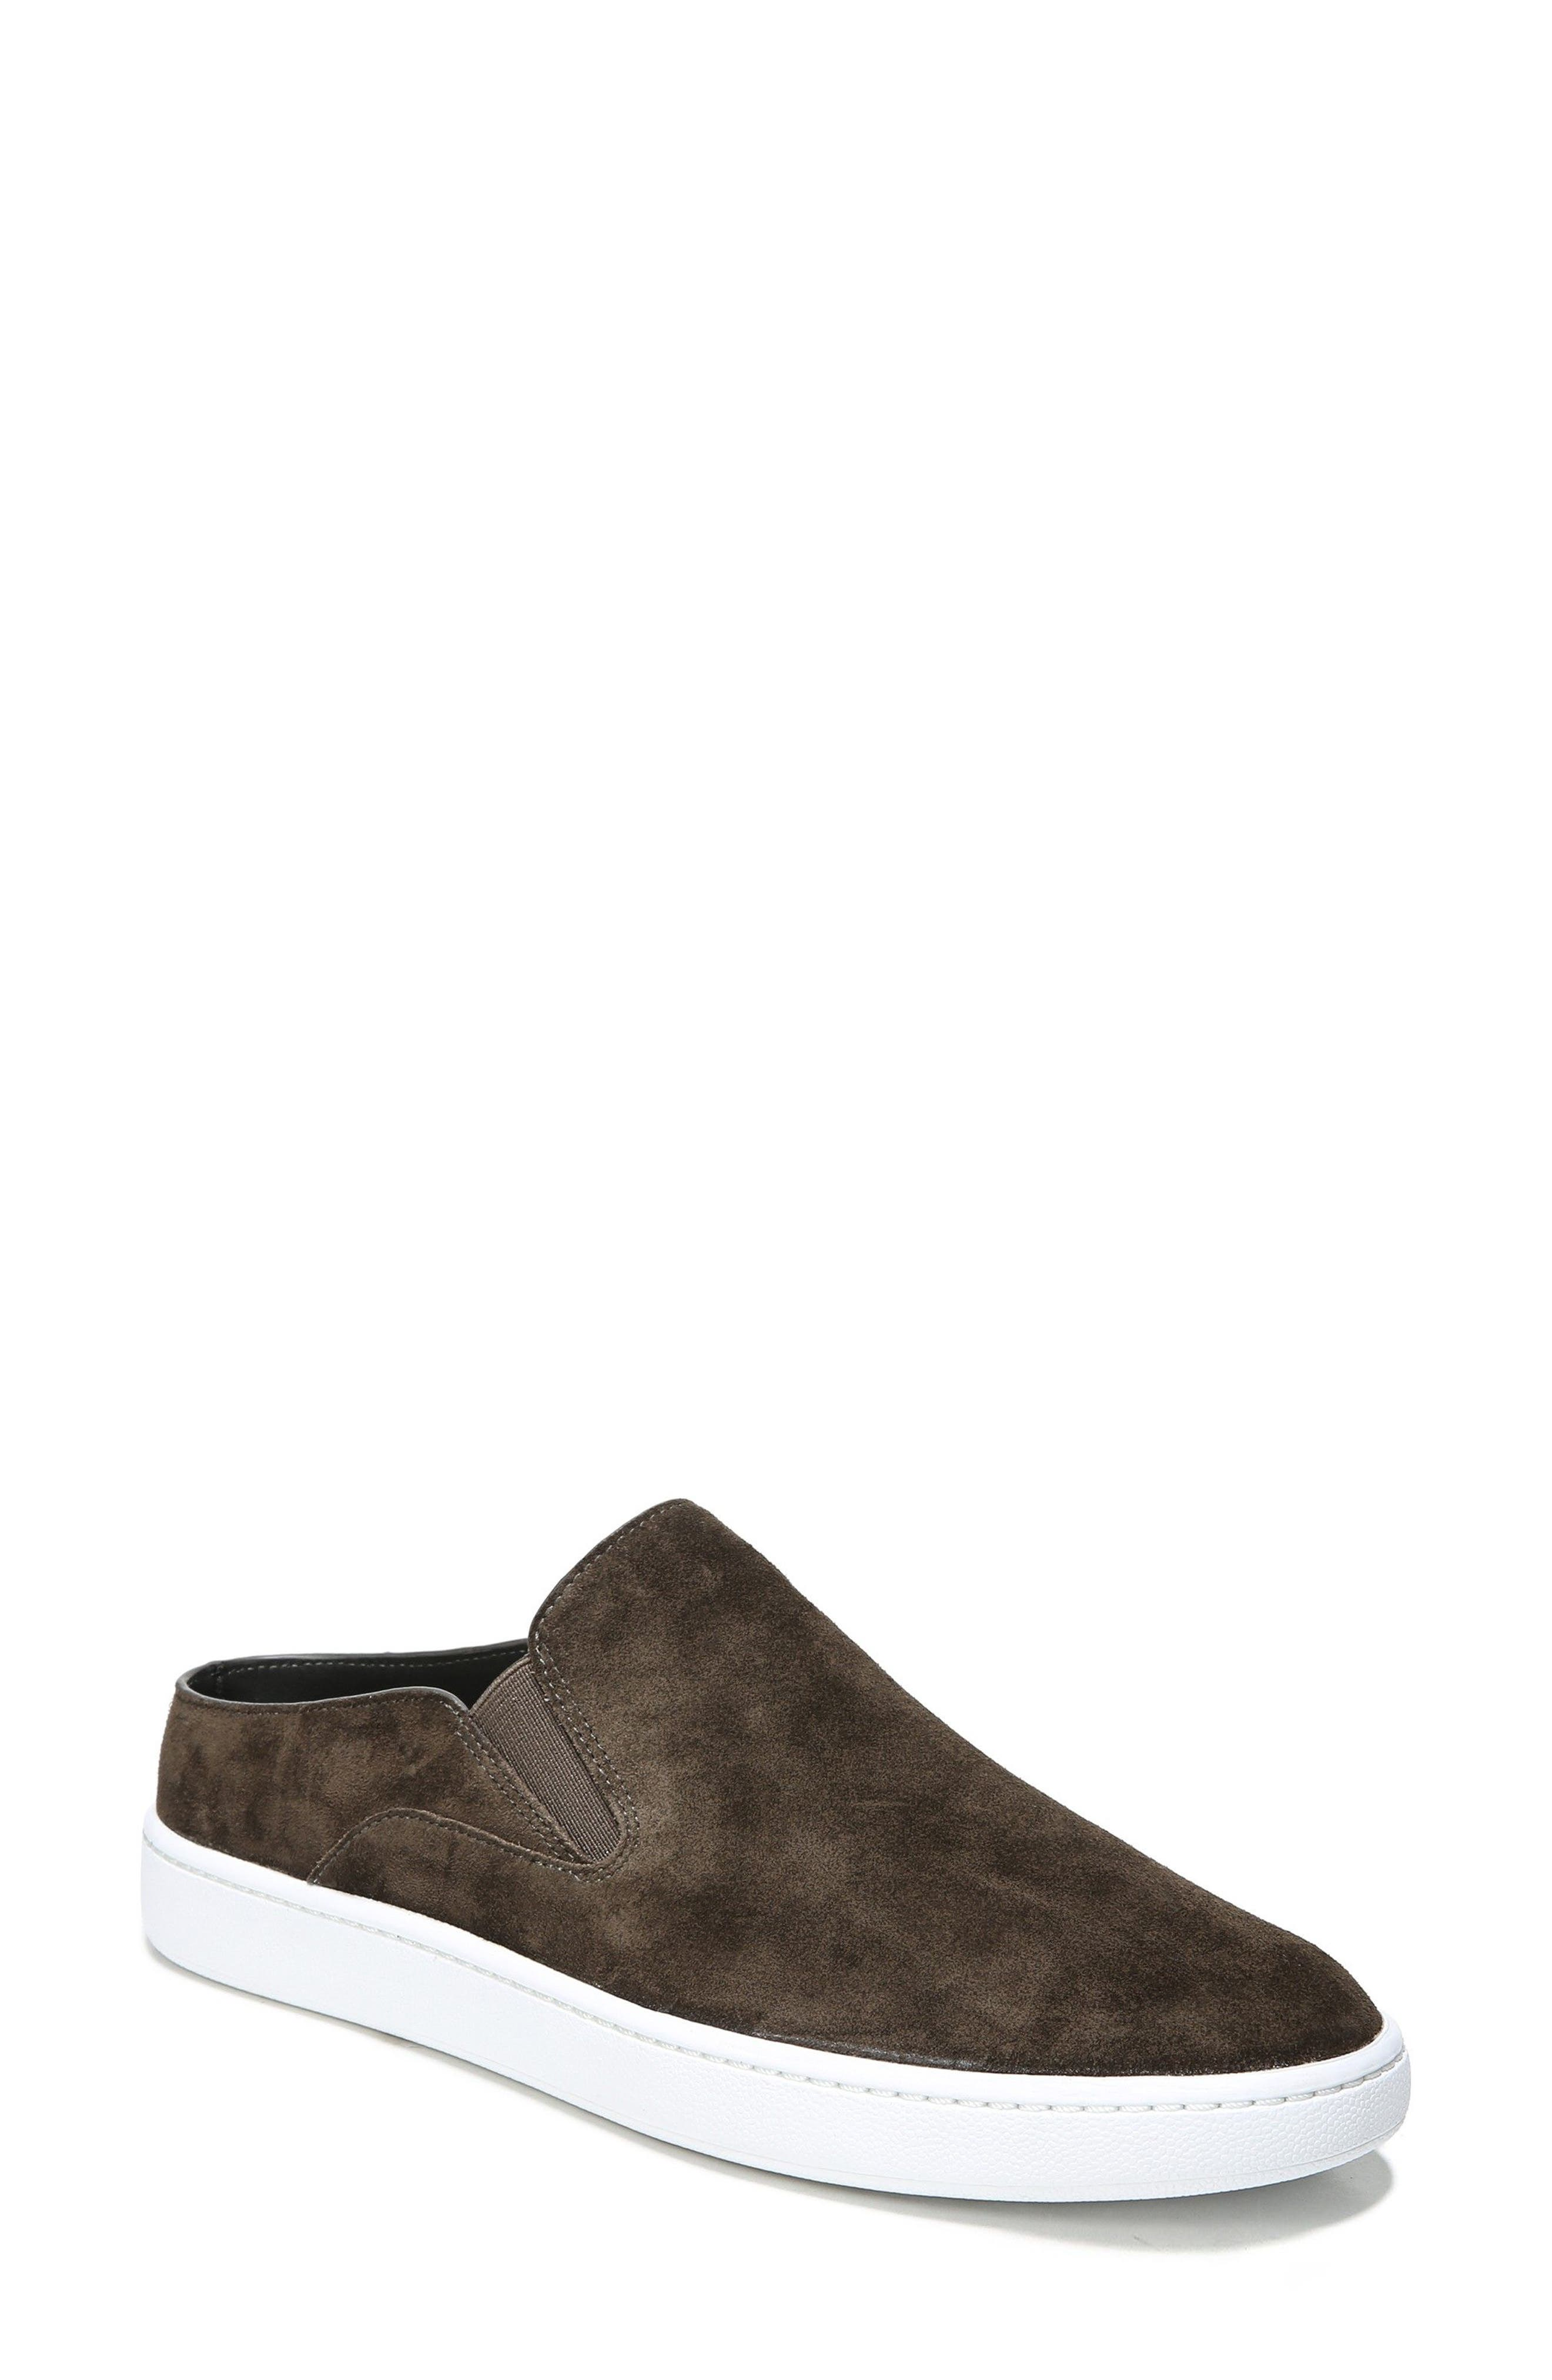 Alternate Image 1 Selected - Vince Verrell Slip-On Sneaker (Women)